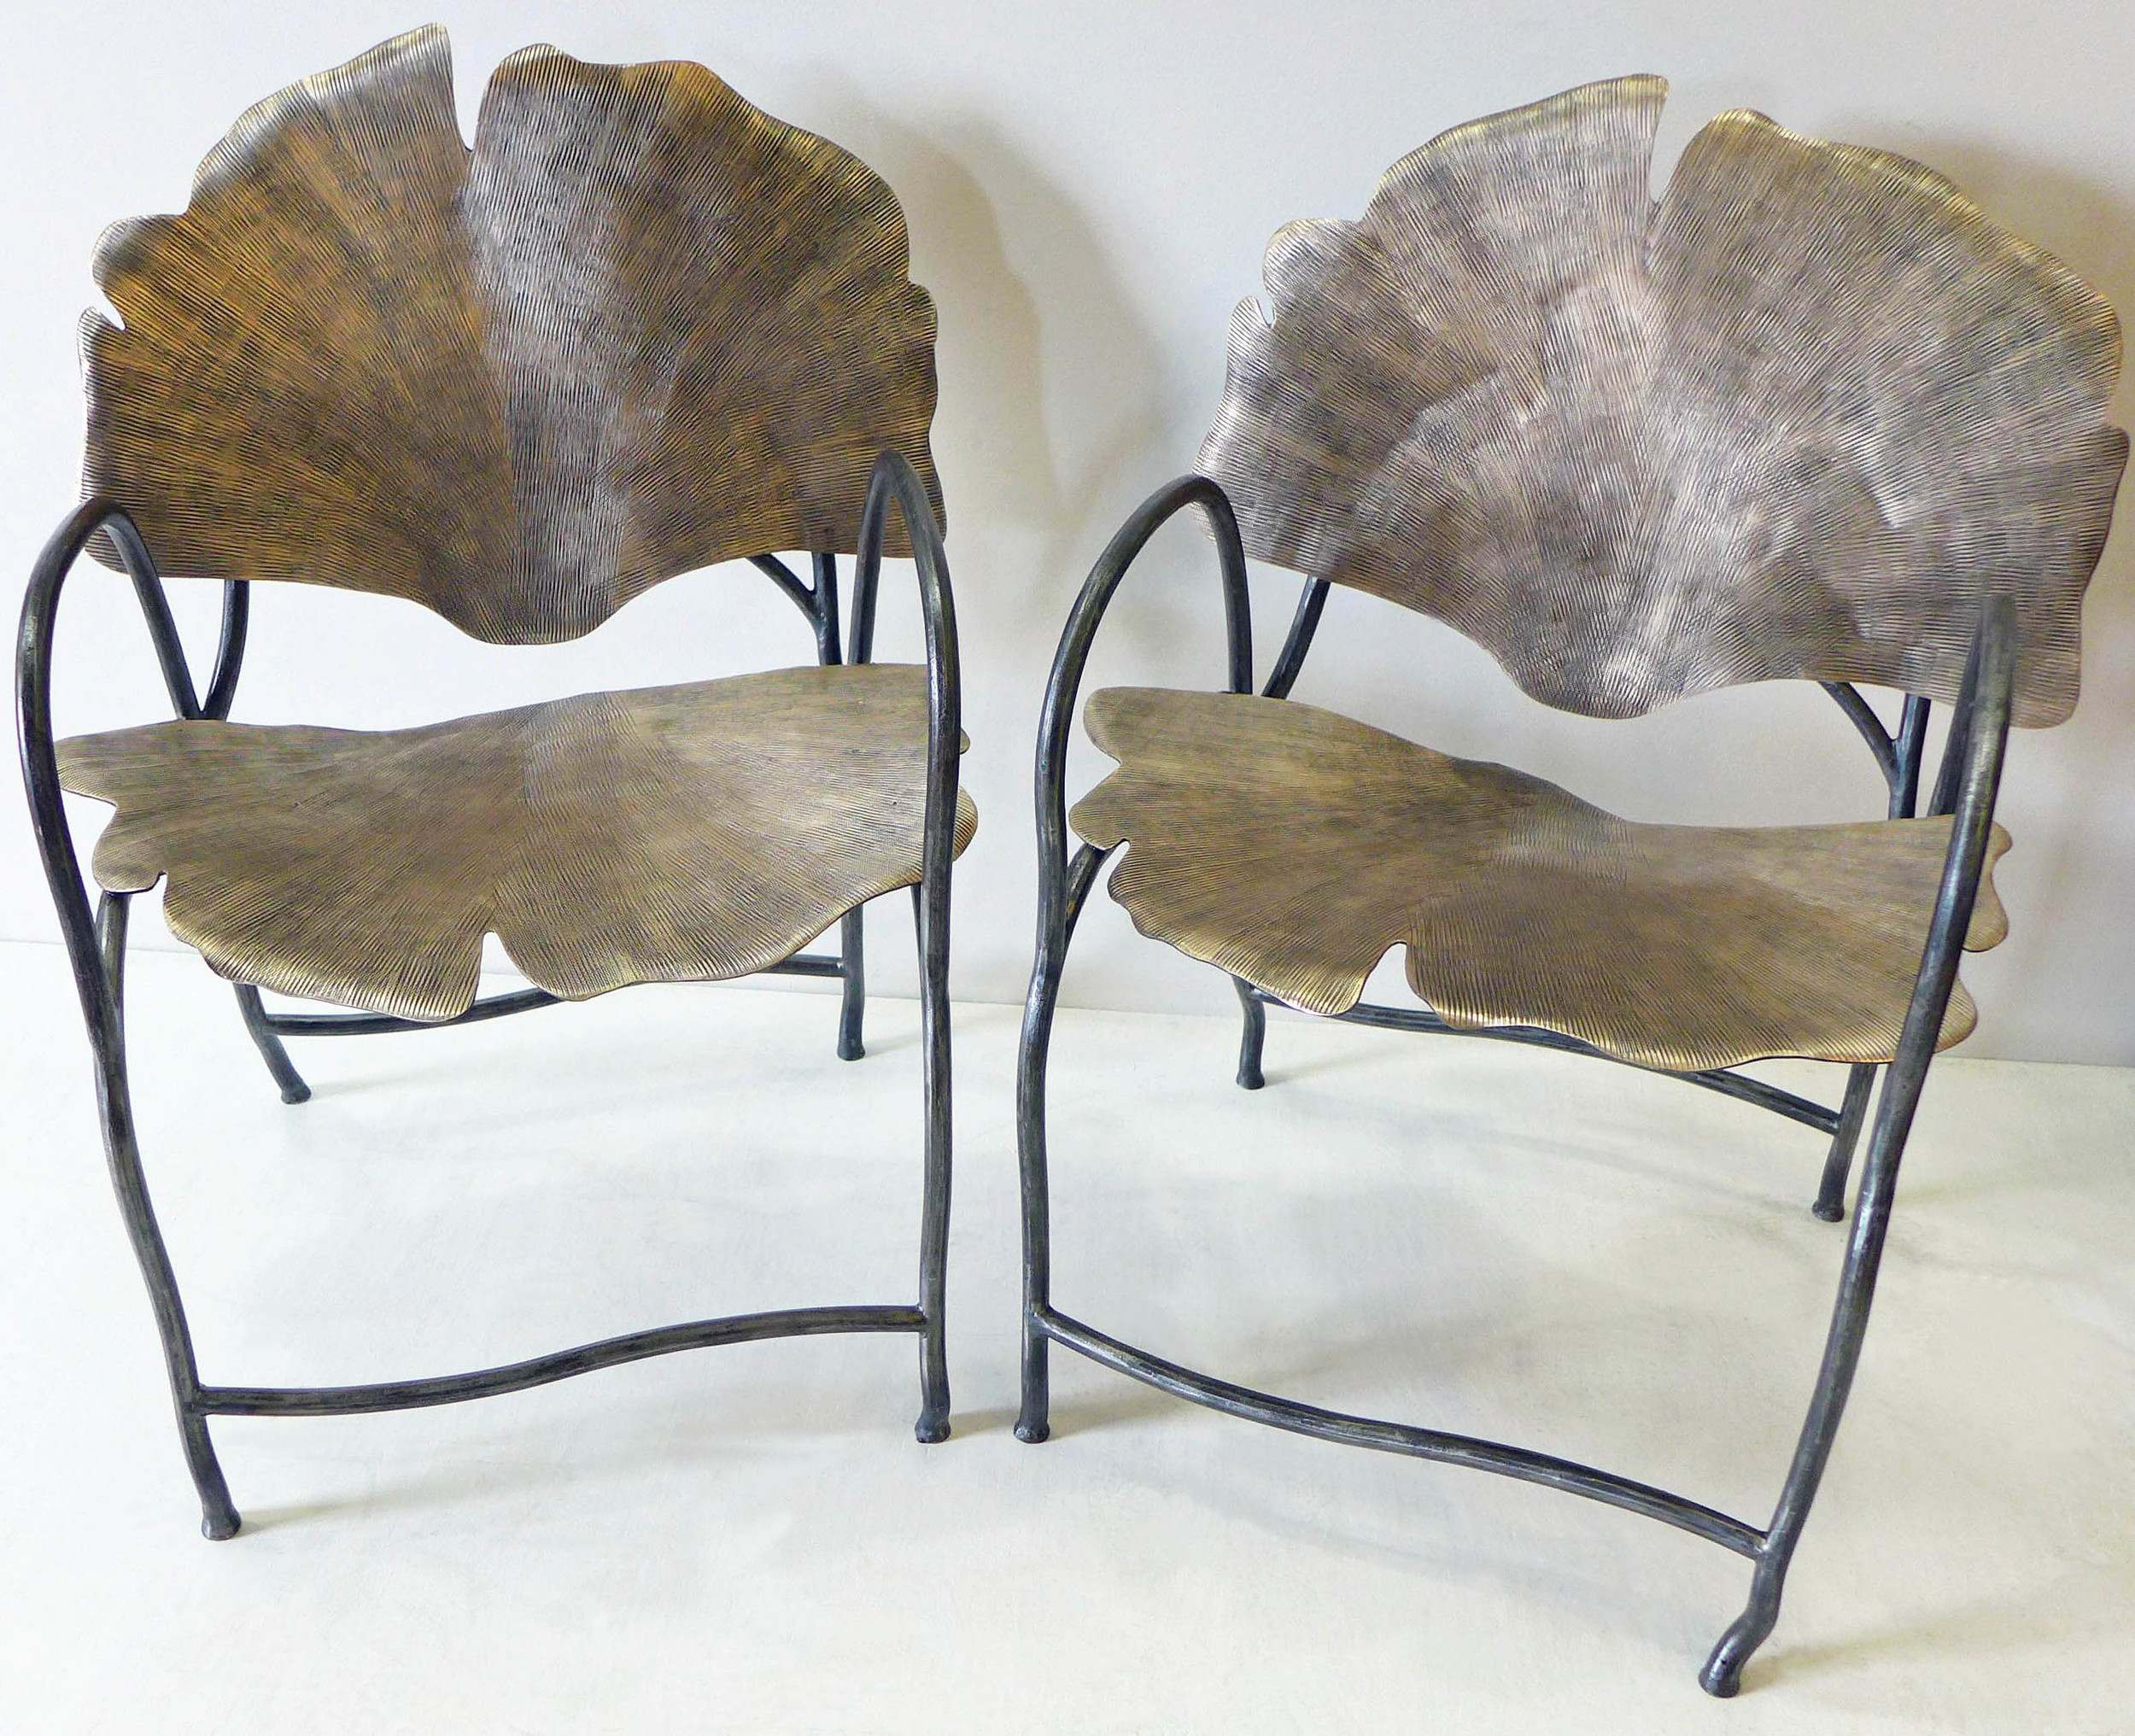 405 Two Chairs.jpg